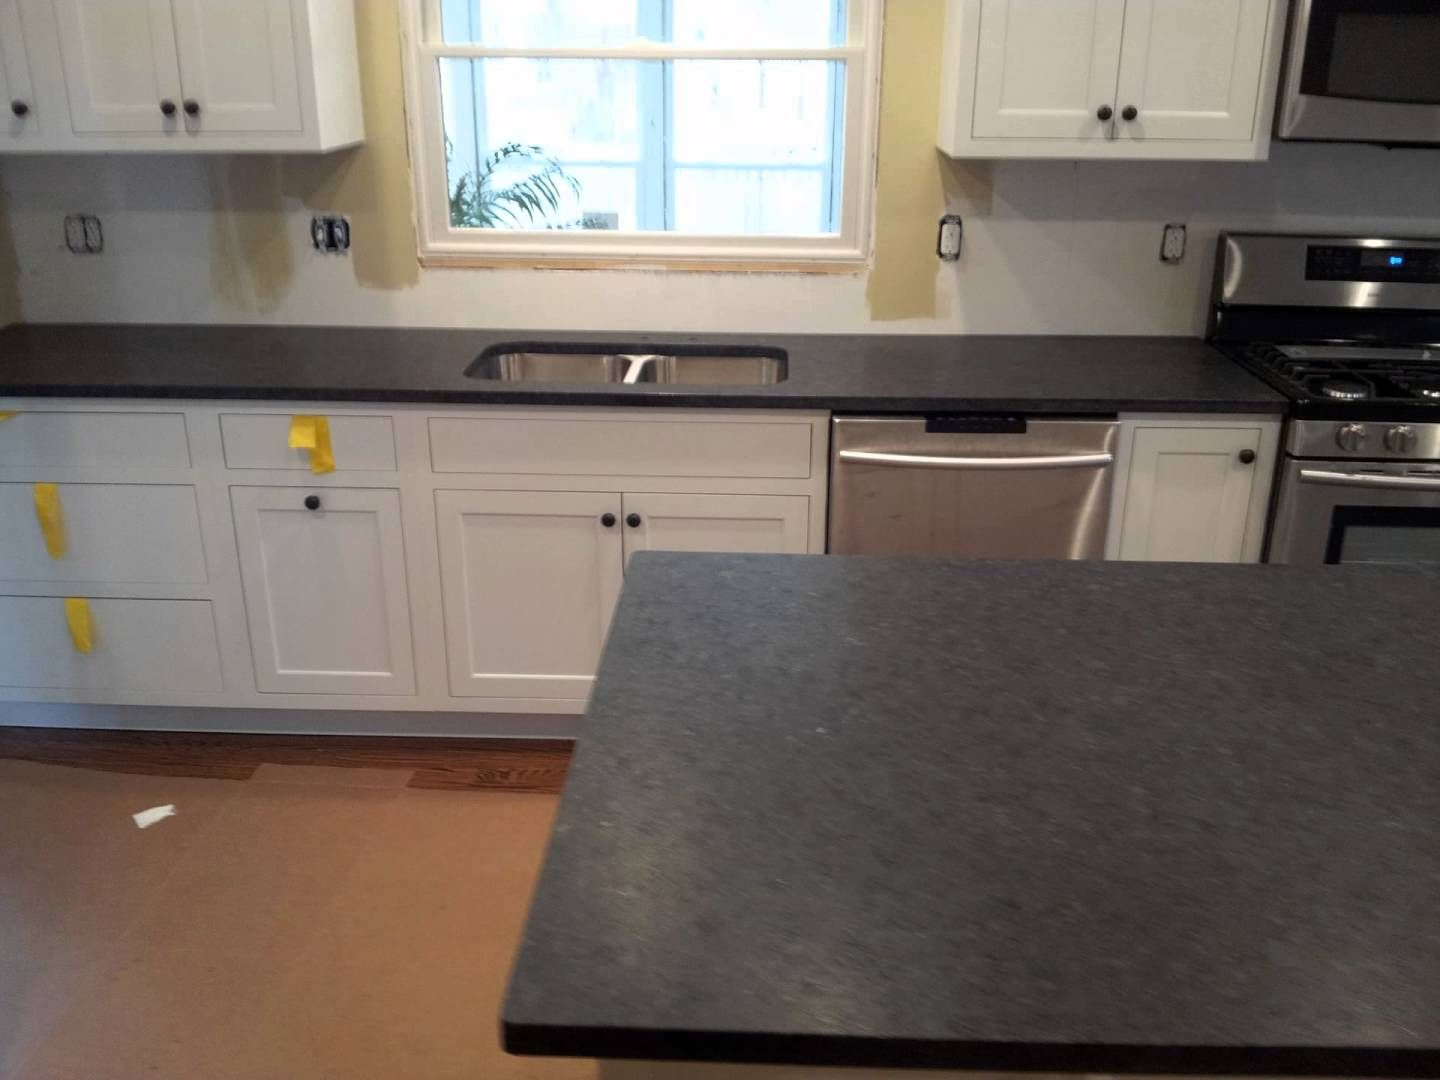 Granite Countertops Winer Special Limited Time Offer From Art Granite Countertops 847 923 1323 Special Package Leather Granite Granite Countertops Countertops